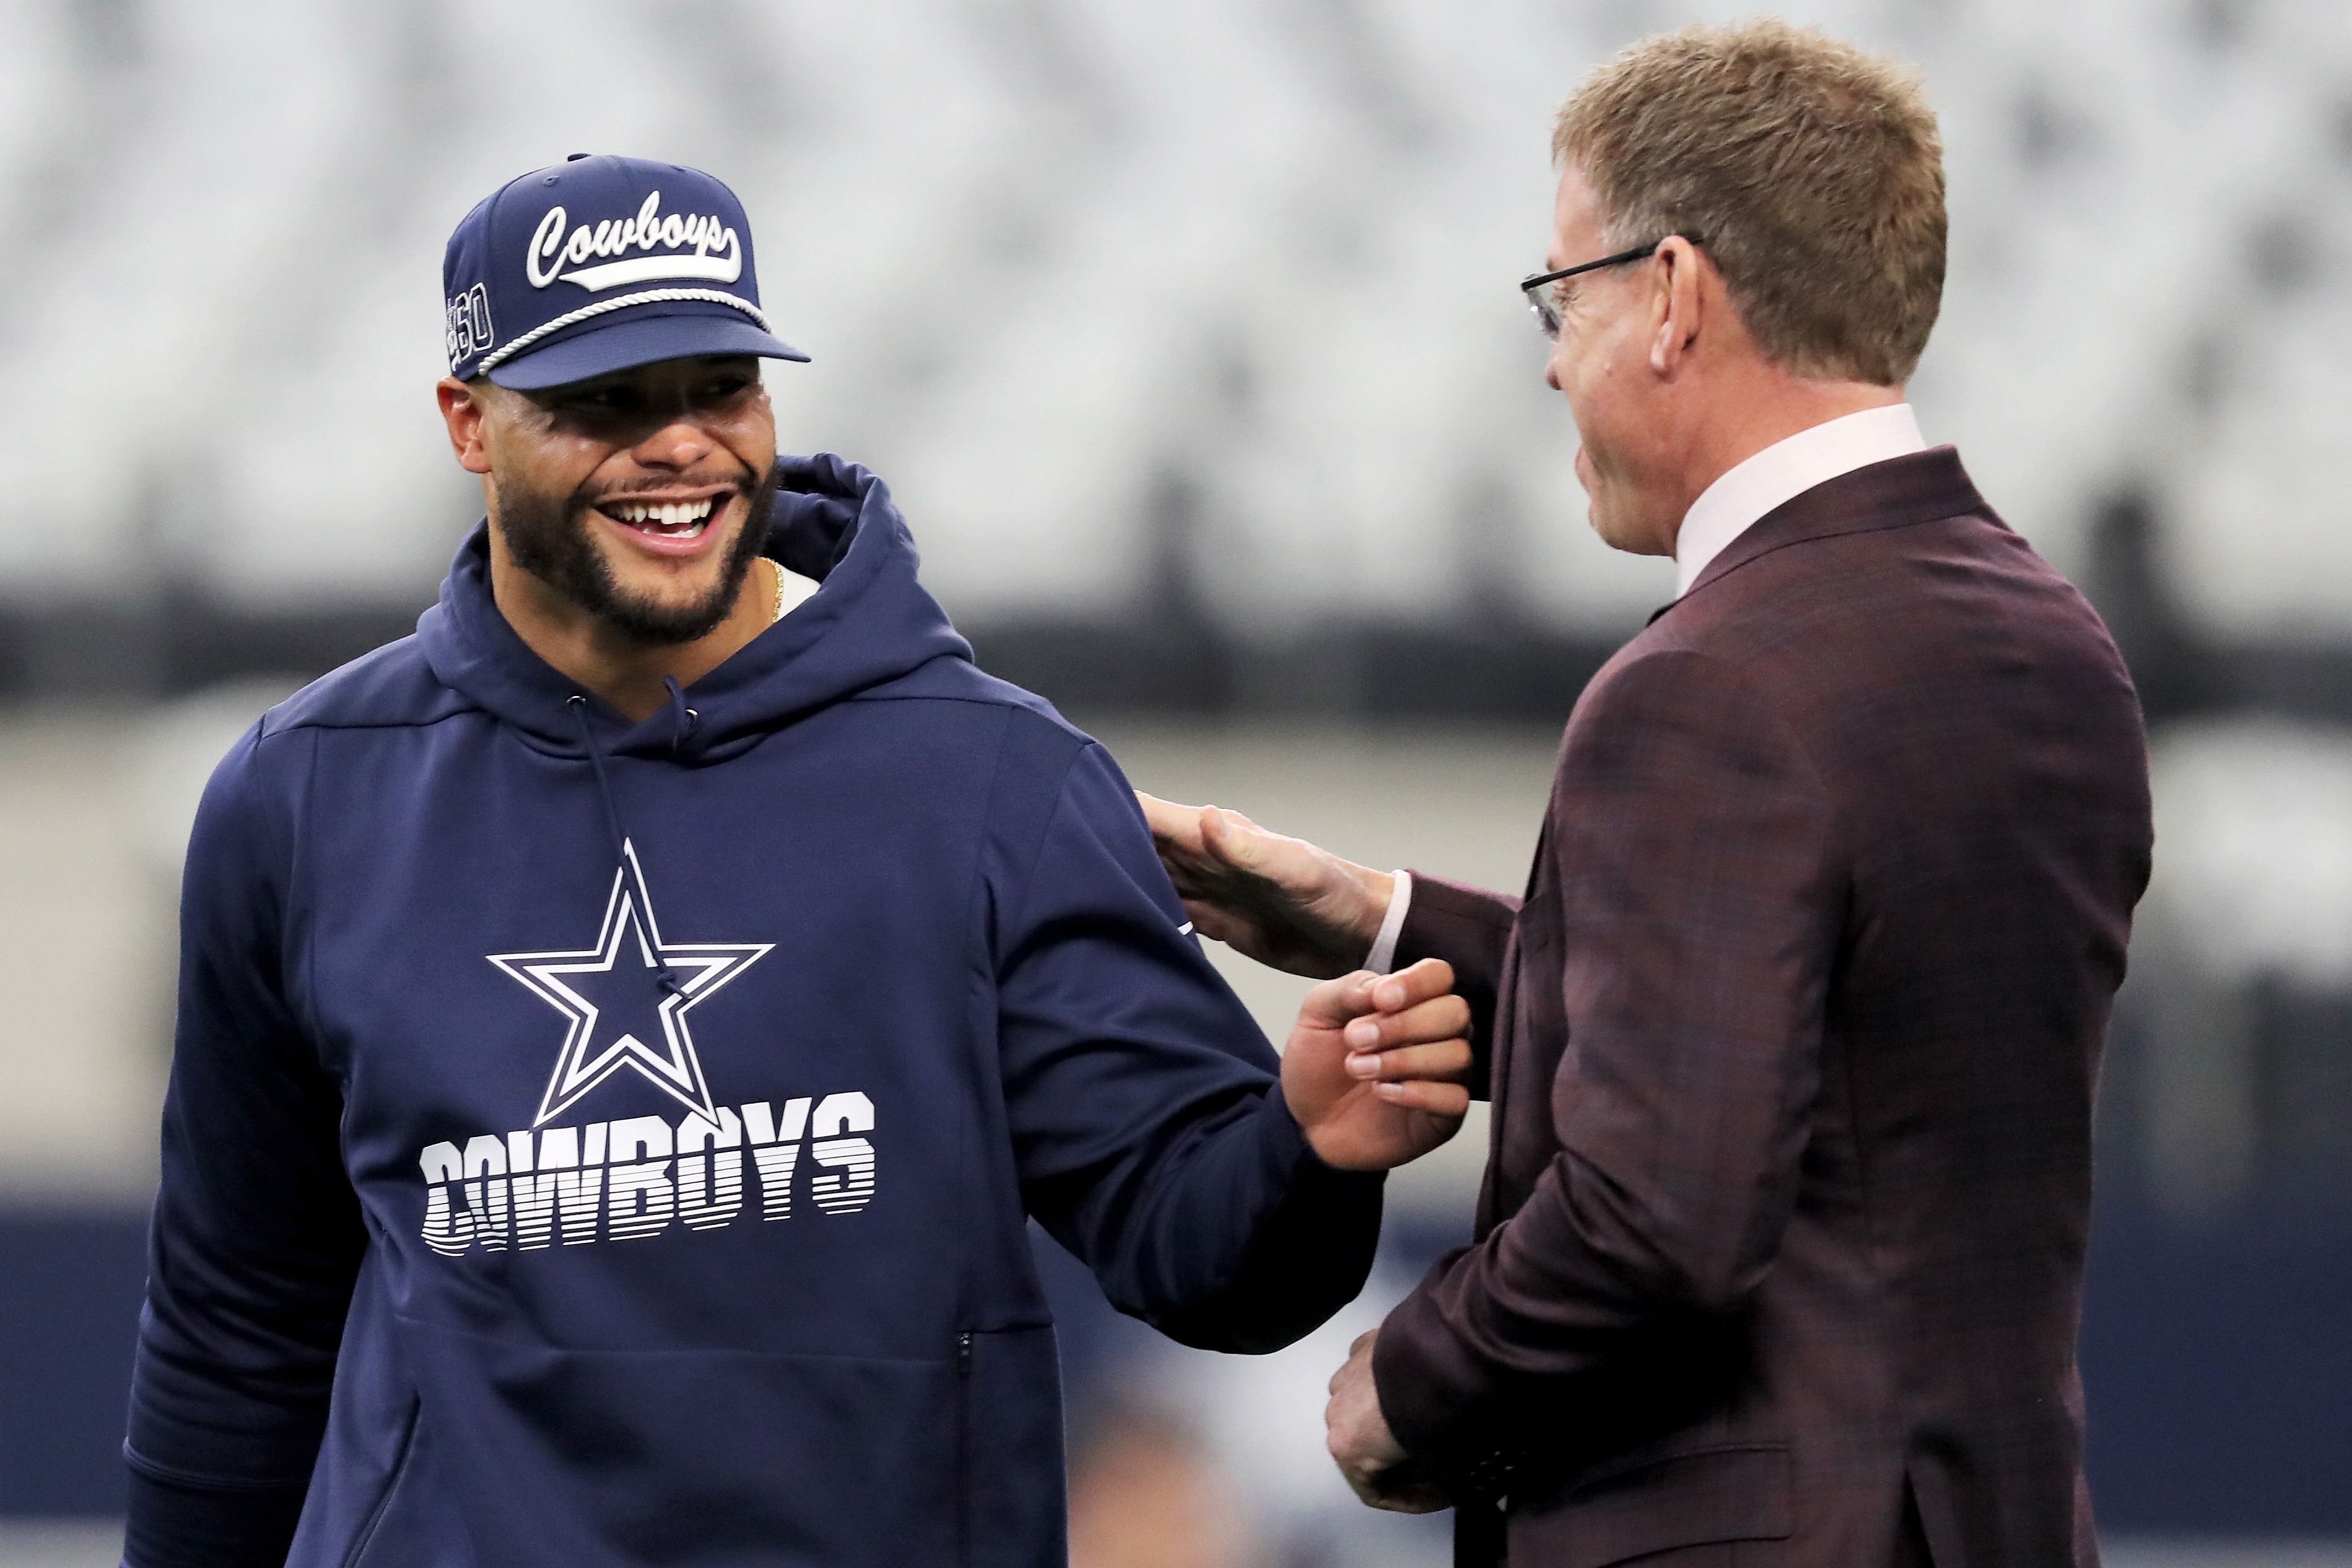 Troy Aikman weighs in on Dak Prescott's contract situation.